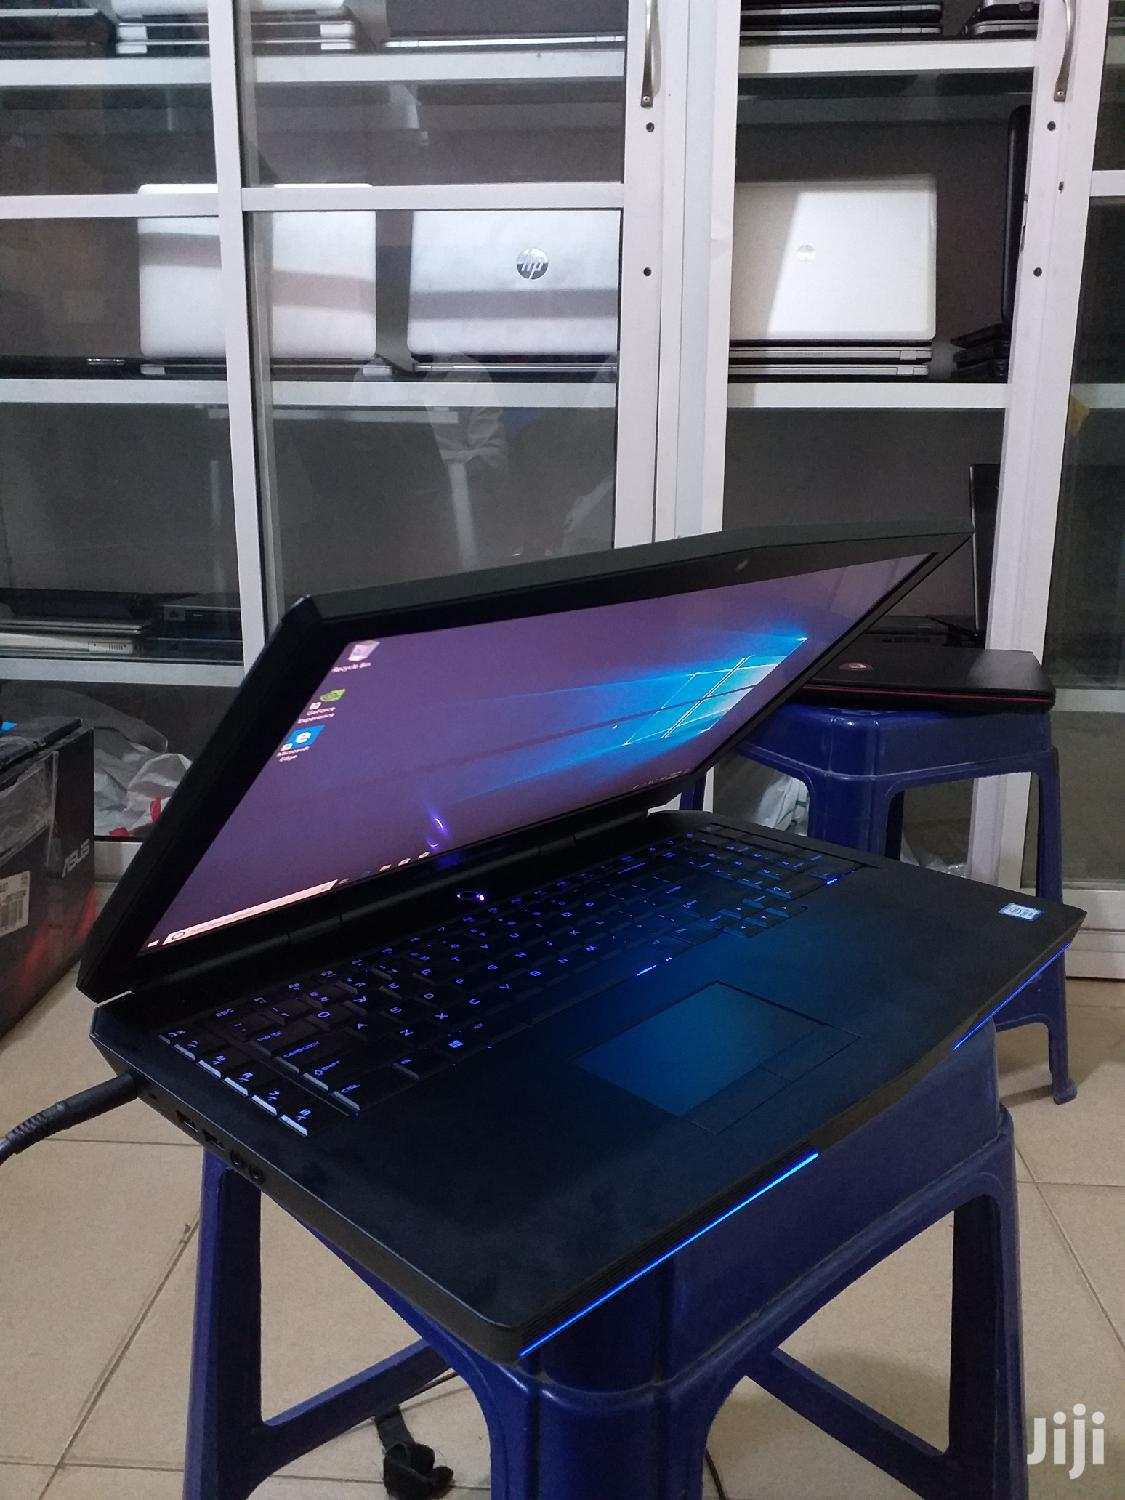 Laptop Dell Alienware 17 R3 16GB Intel Core i7 SSHD (Hybrid) 1T   Laptops & Computers for sale in Ikeja, Lagos State, Nigeria